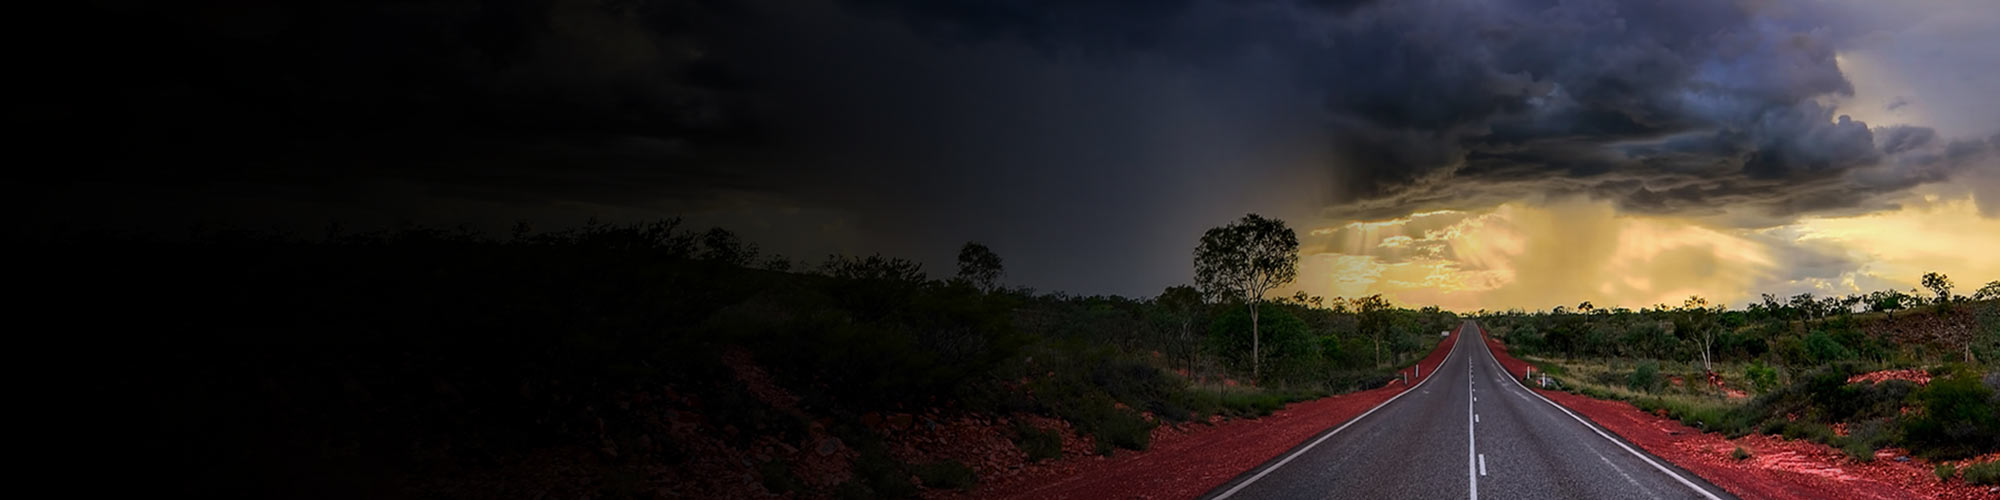 Gathering storm clouds in outback Australia